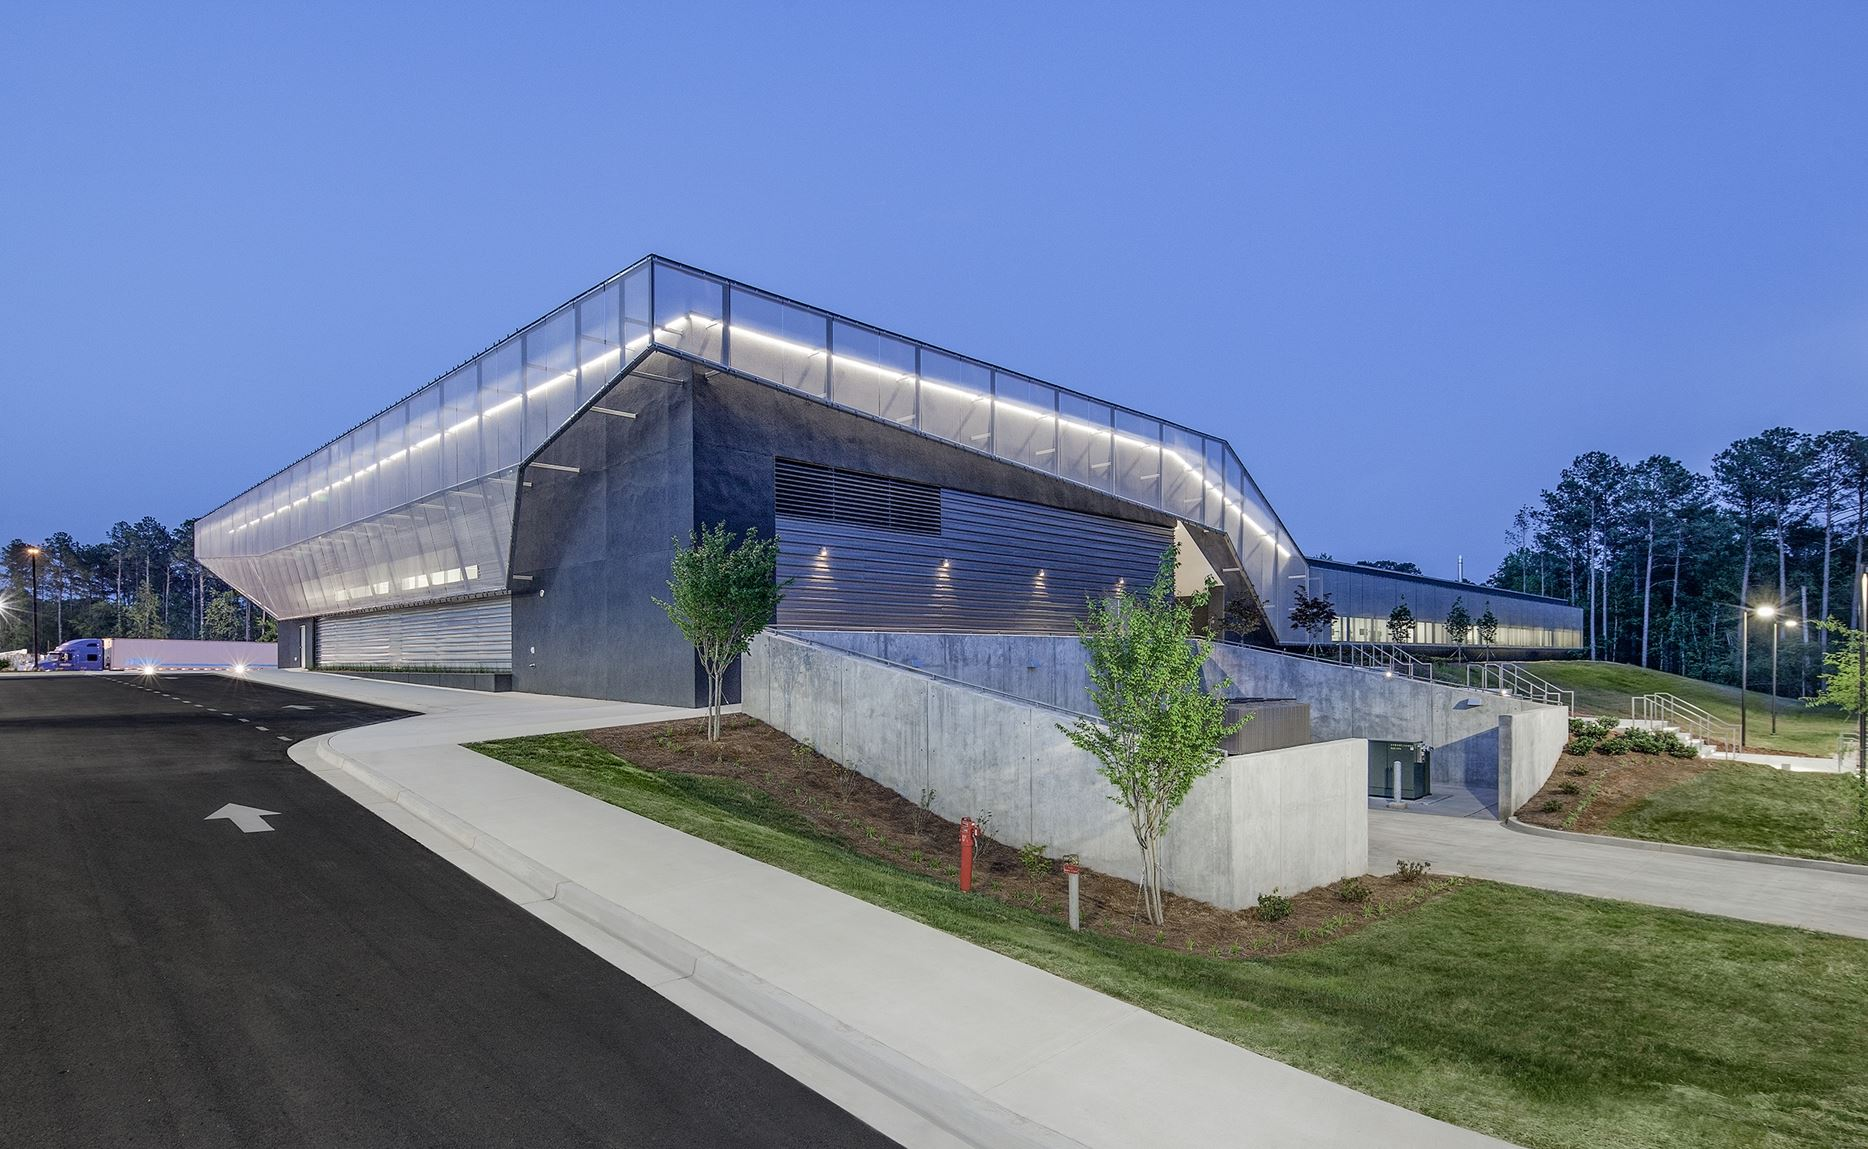 Georgia BioScience Training Center and Cambridge Architectural Mesh